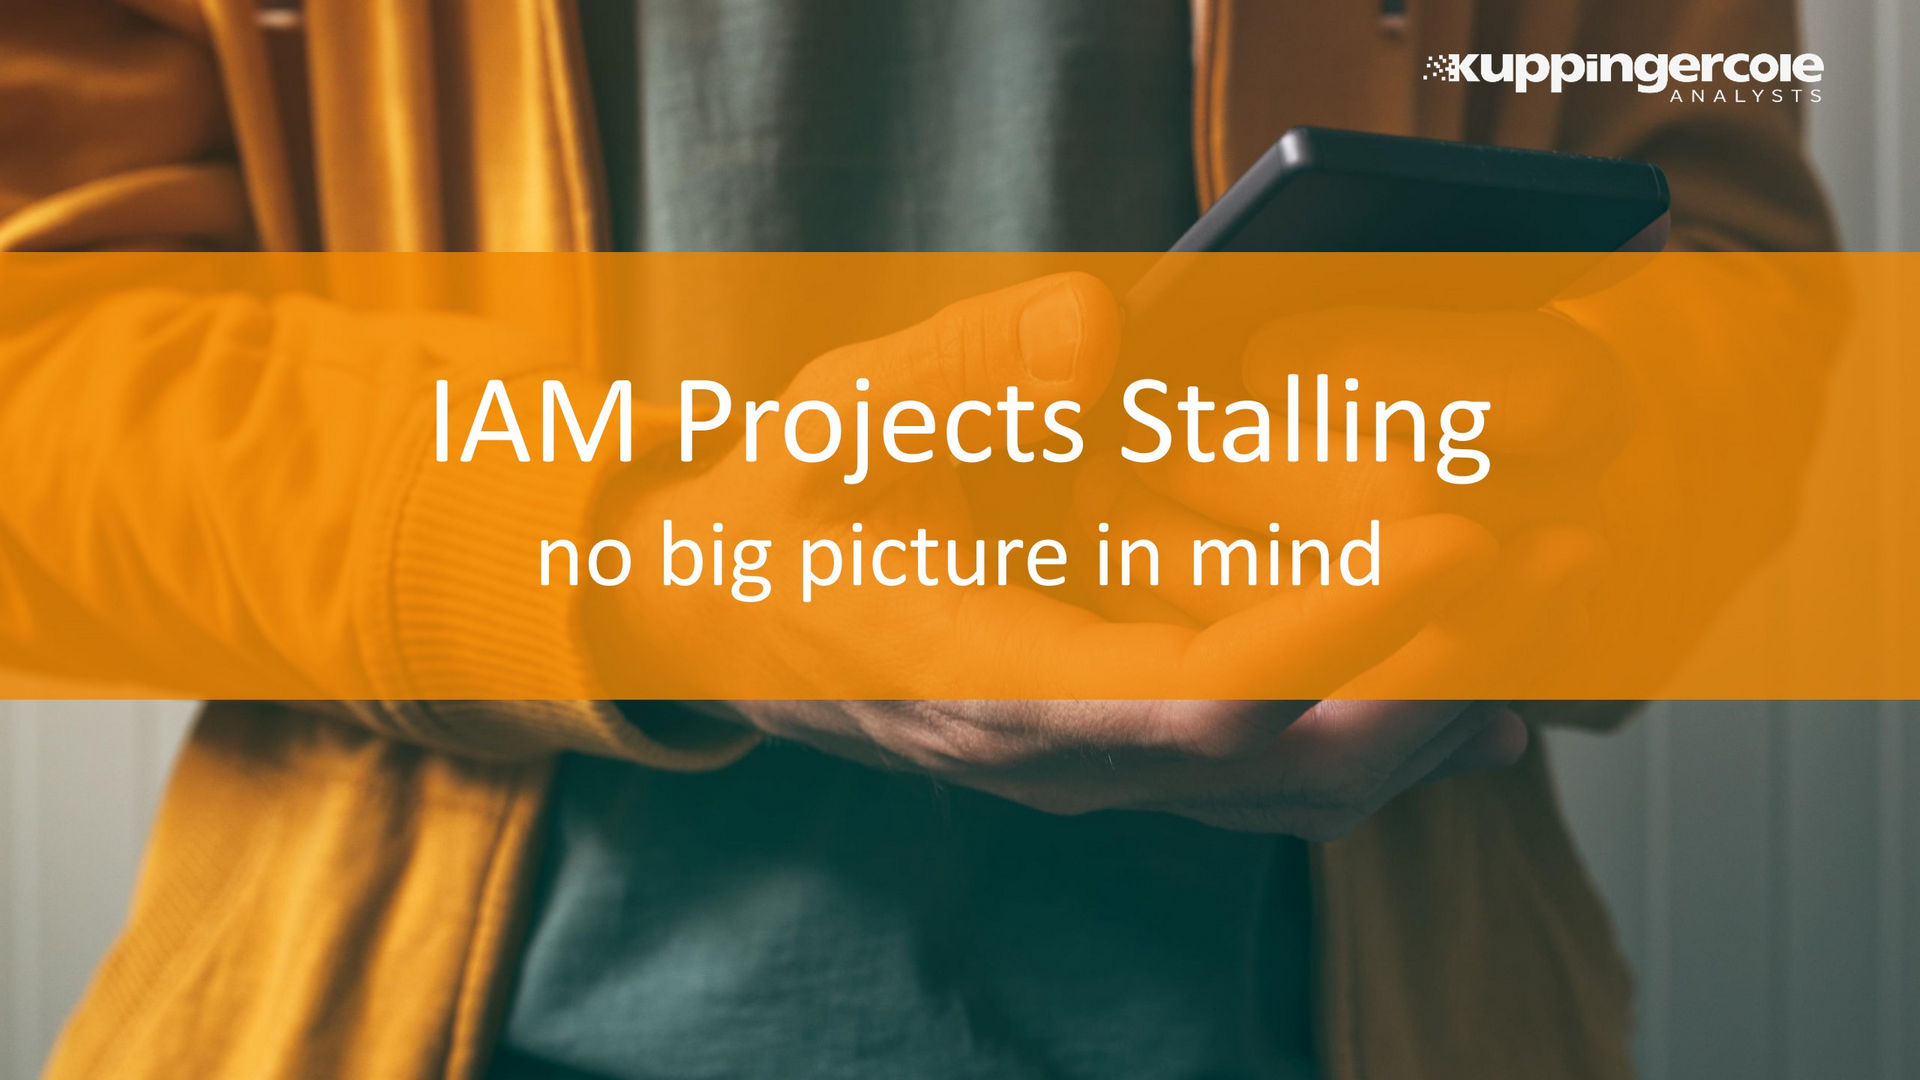 IAM Projects Stalling - No Big Picture in Mind